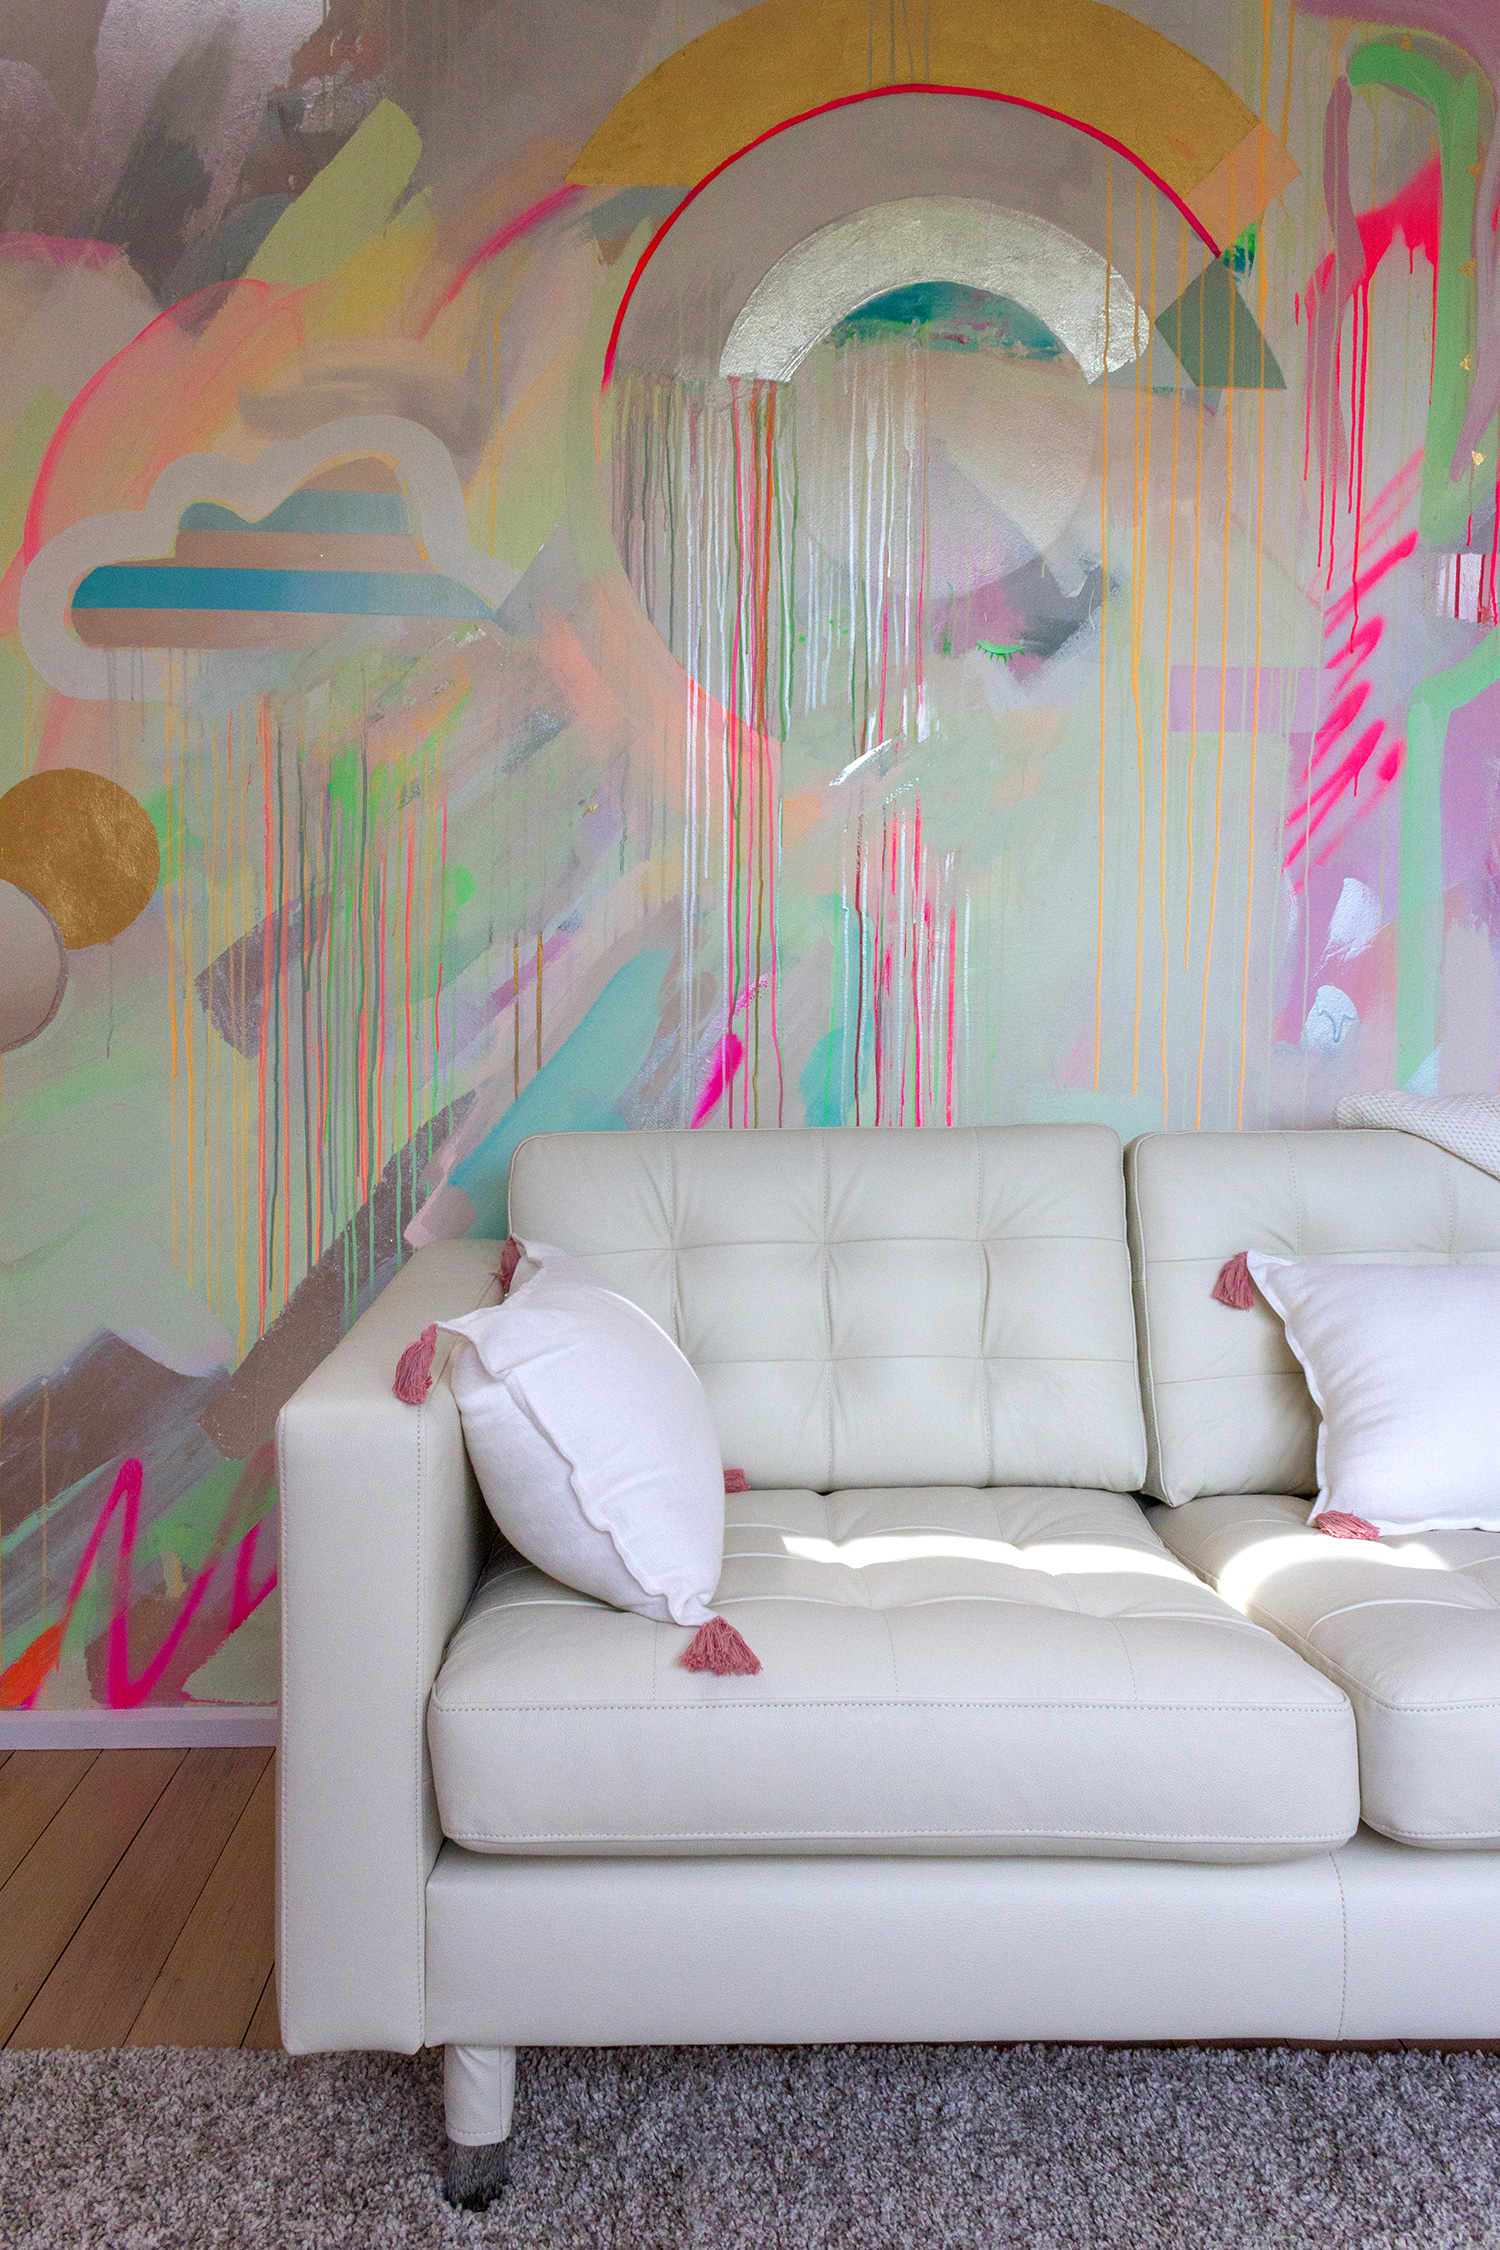 Vibrant galaxy wall mural in bright neon colours, featuring gold leaf shapes, metallic rainbow, spray painted cactus and striped cloud. Styled in front is a white leather couch and cushions.